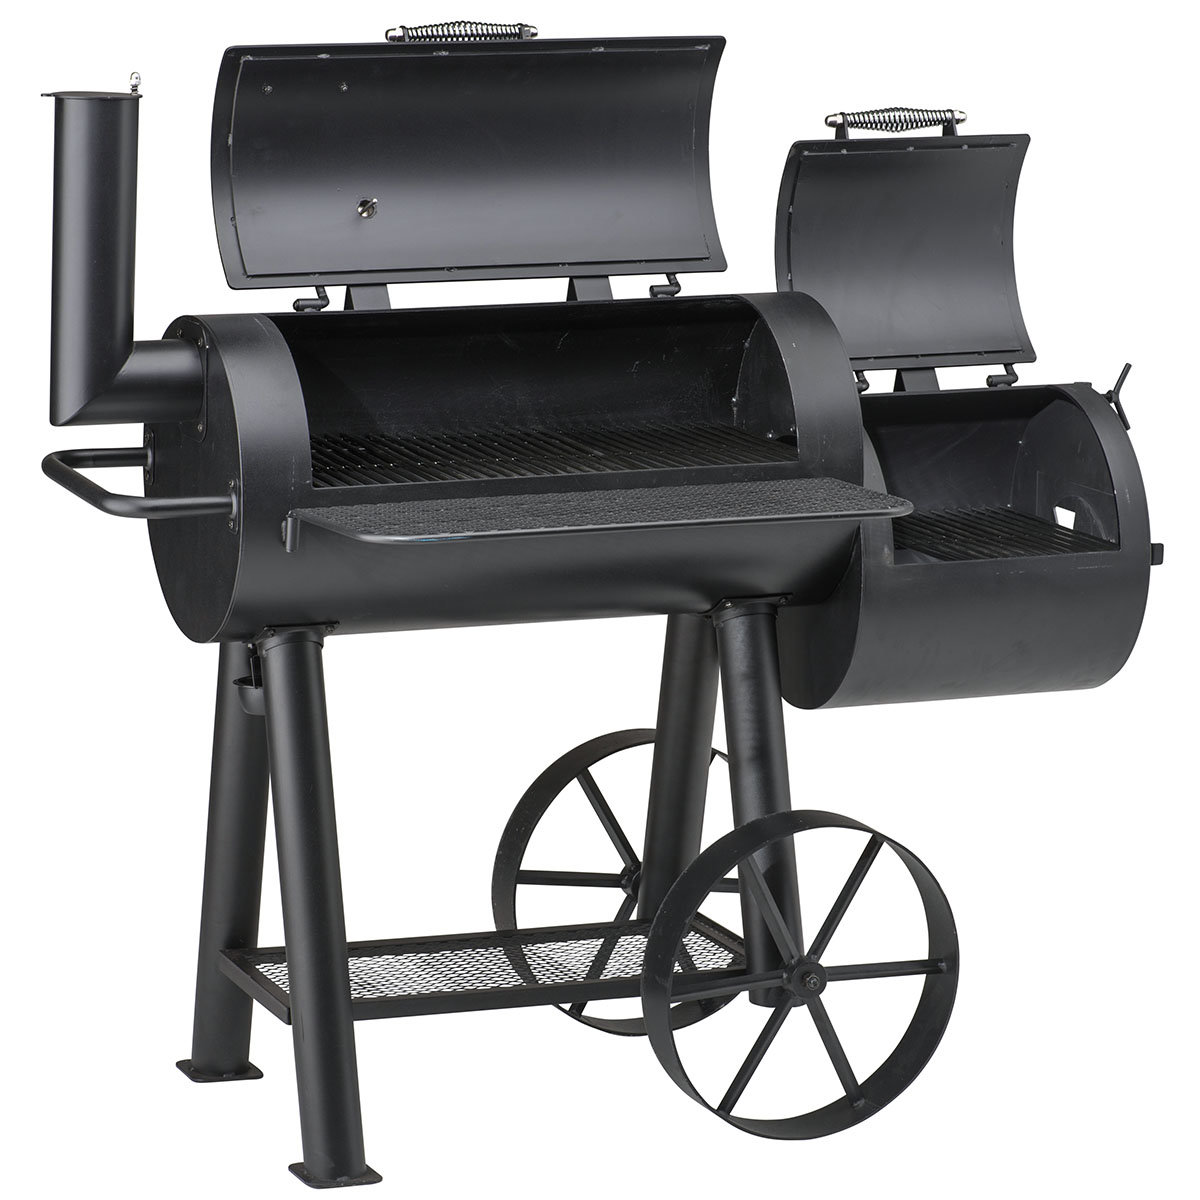 holzkohlegrill smoker tennesse 400 online kaufen bei g rtner p tschke. Black Bedroom Furniture Sets. Home Design Ideas